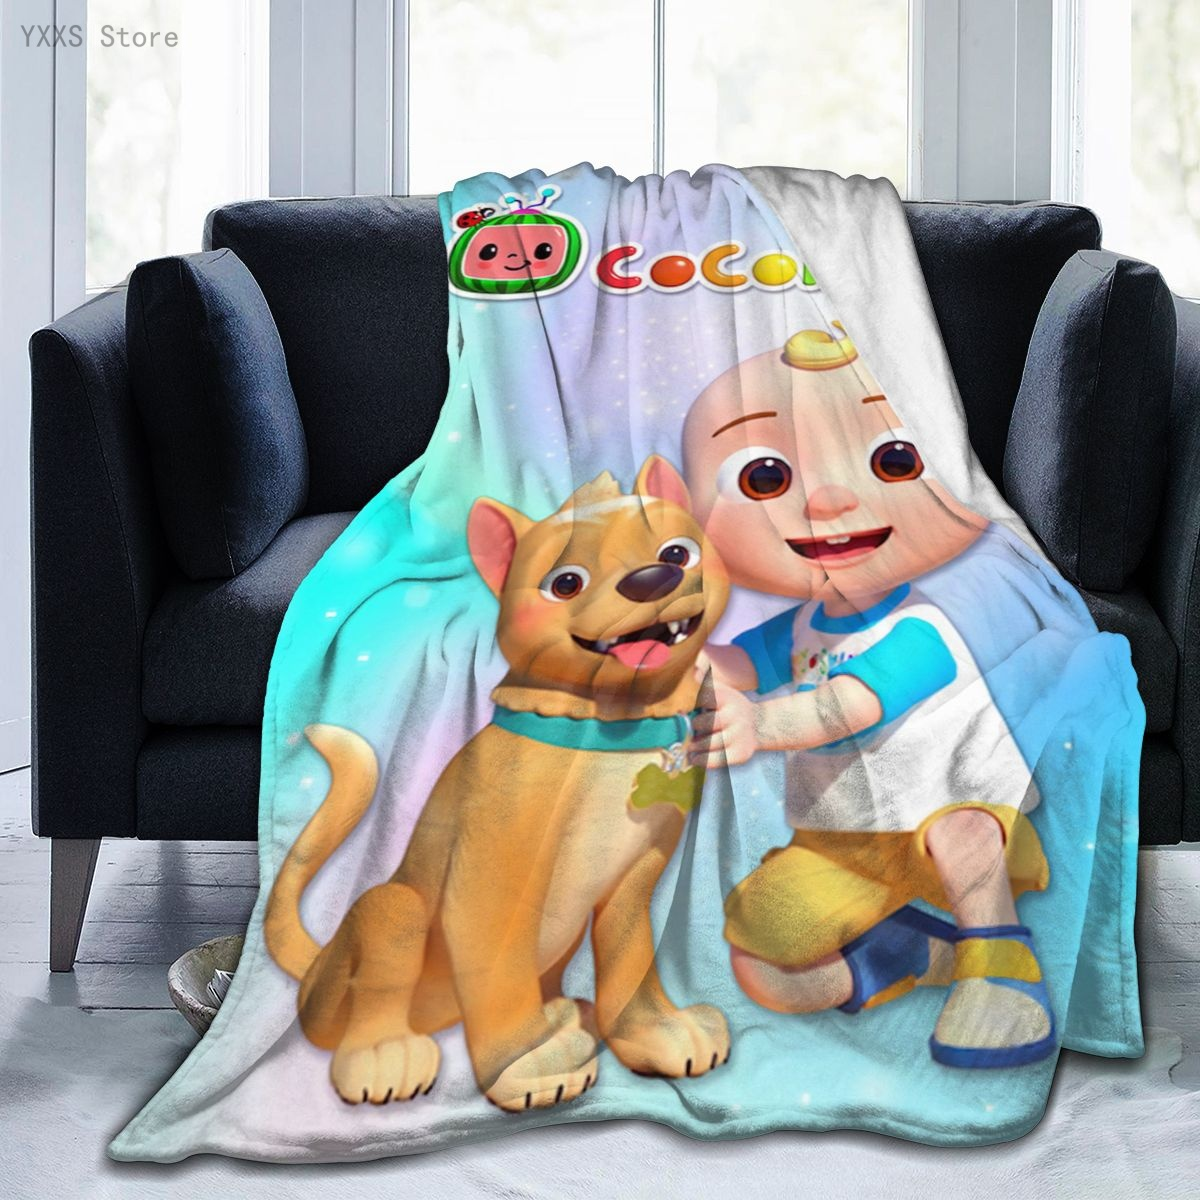 Coco-Melon Kids Blanket Super Soft and Warm Plush Blankets Cute Dog and Baby Printed, Children Blankets for Couch Or Bed